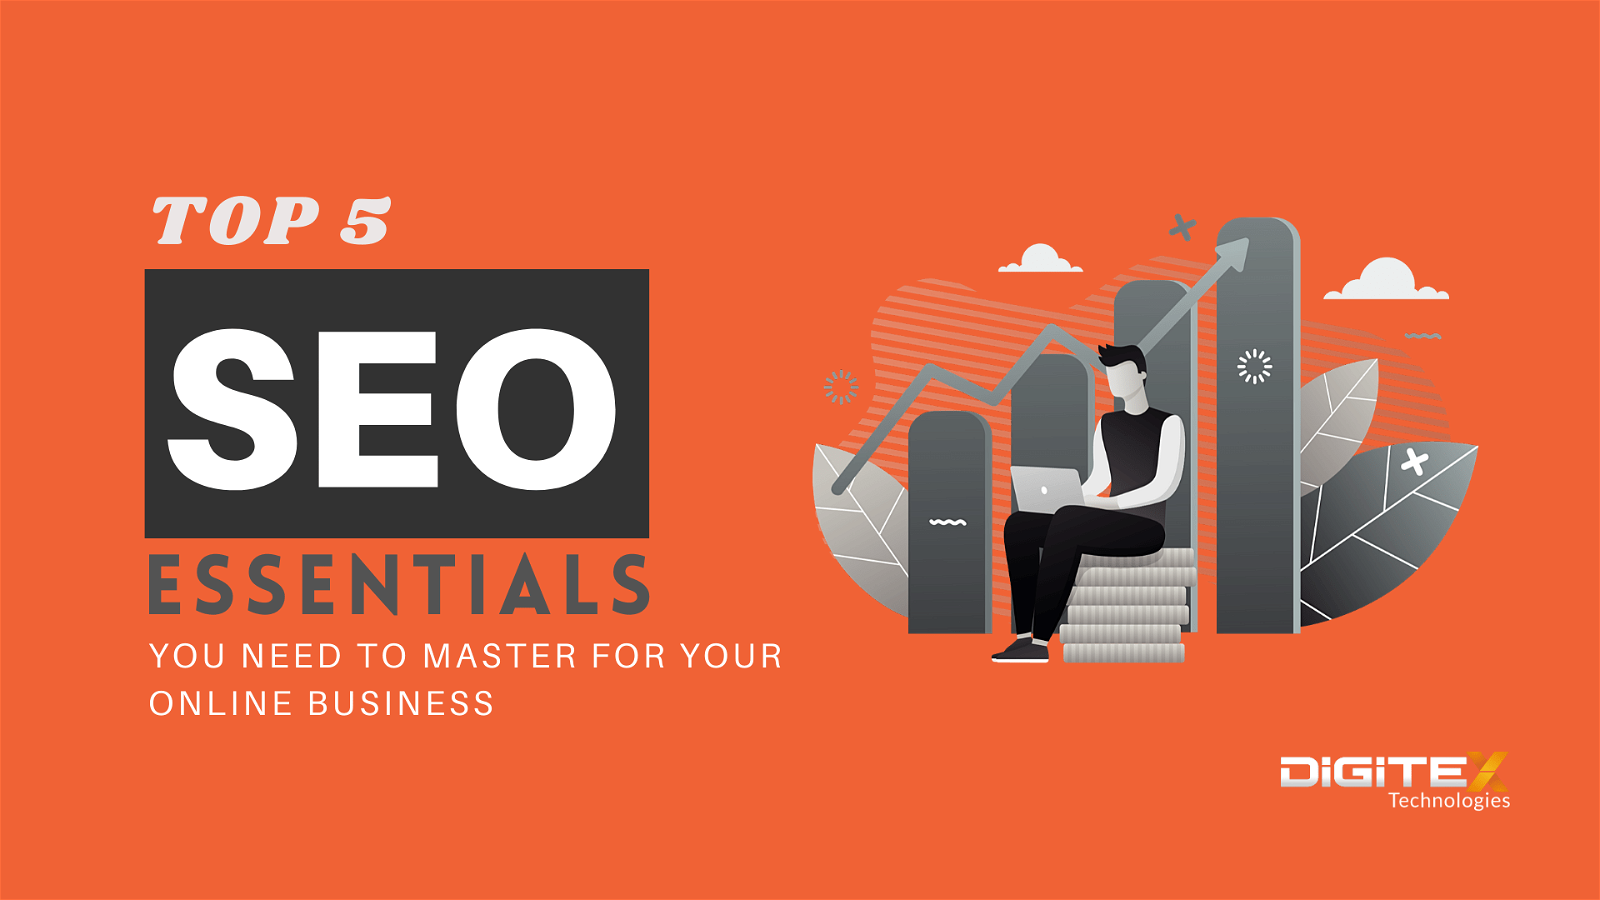 Top 5 SEO Essentials You Need To Master For Your Online Business